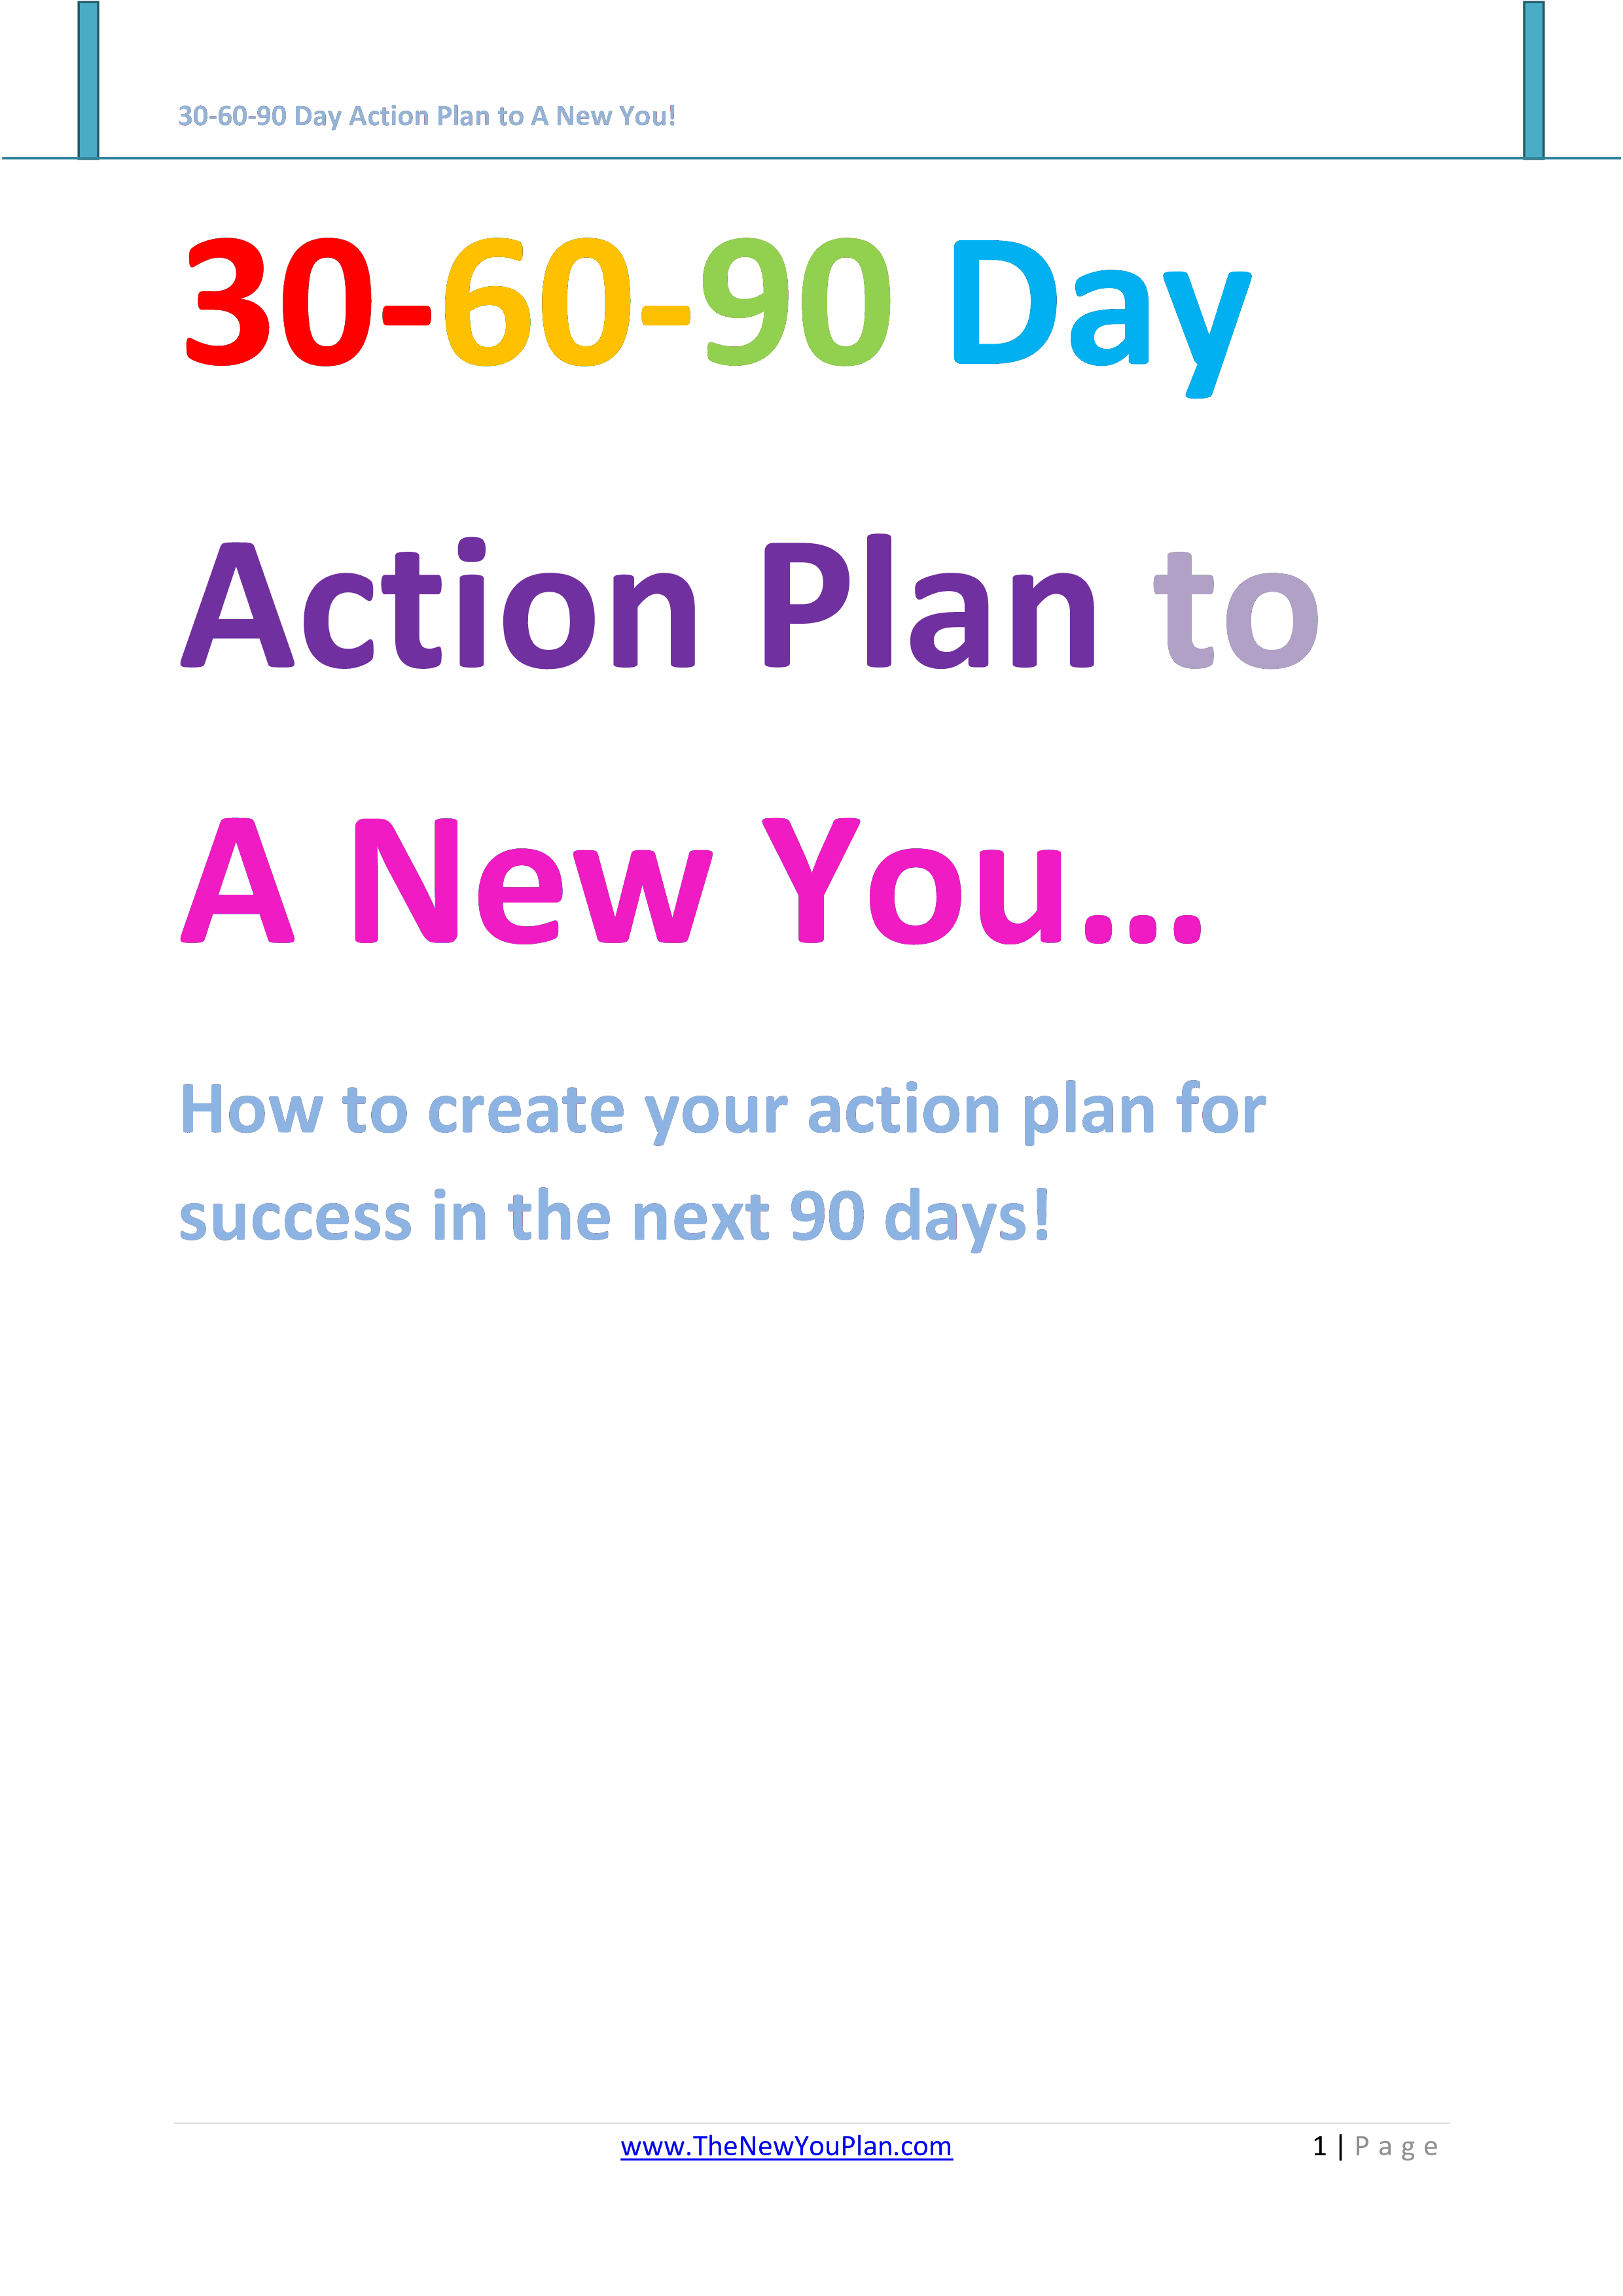 90 Day Action Plan Template from www.allbusinesstemplates.com